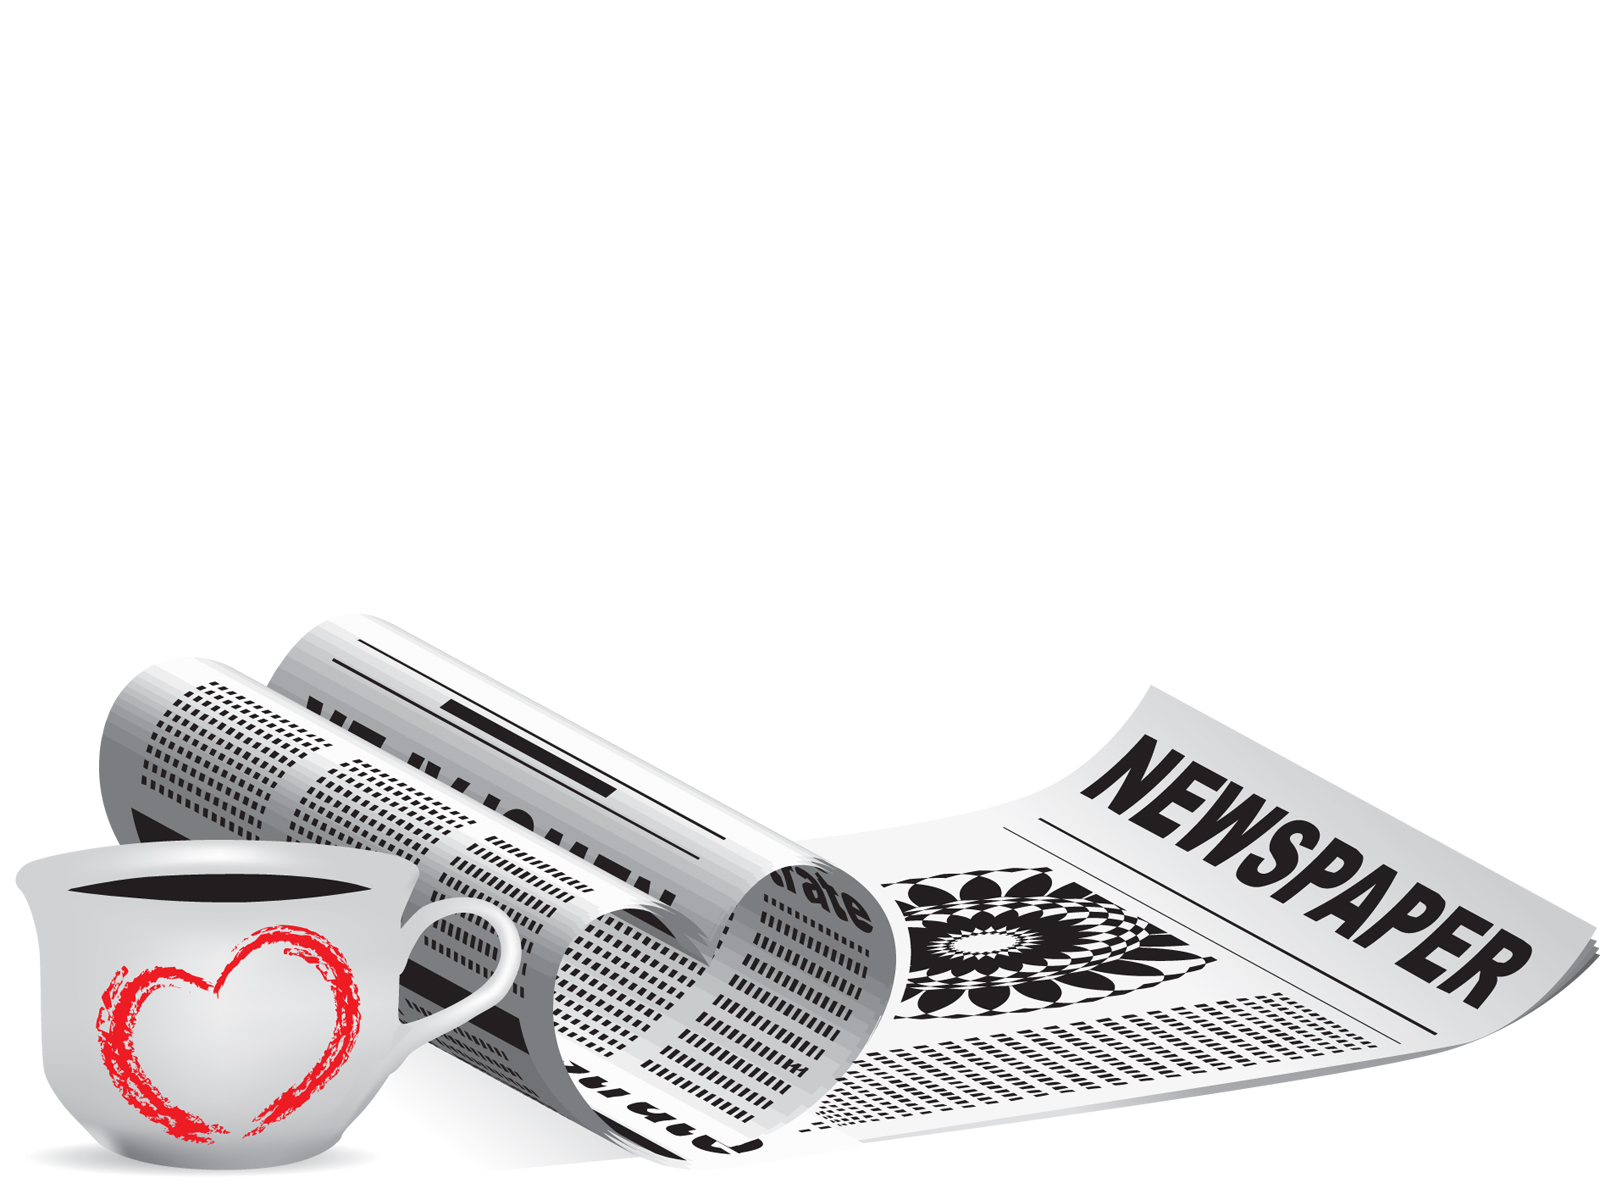 newspaper with coffee backgrounds design educational